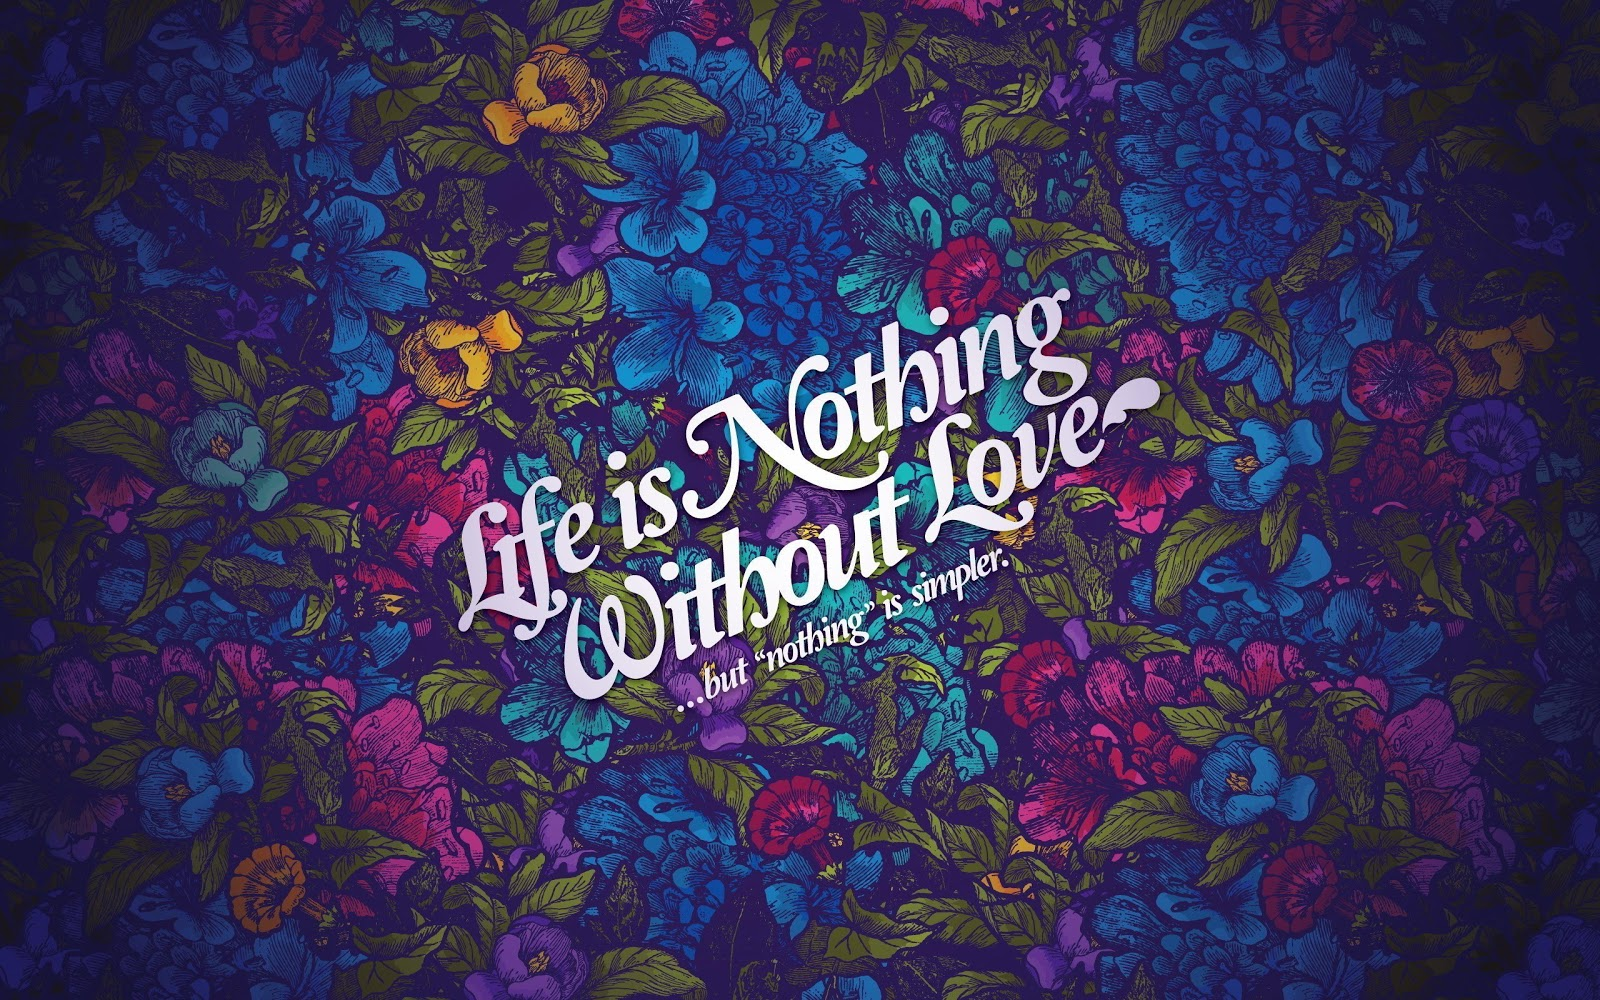 Love Wallpapers Hd For : HD Wallpaper Download: Love HD Wallpapers - Life Nothing Without Love